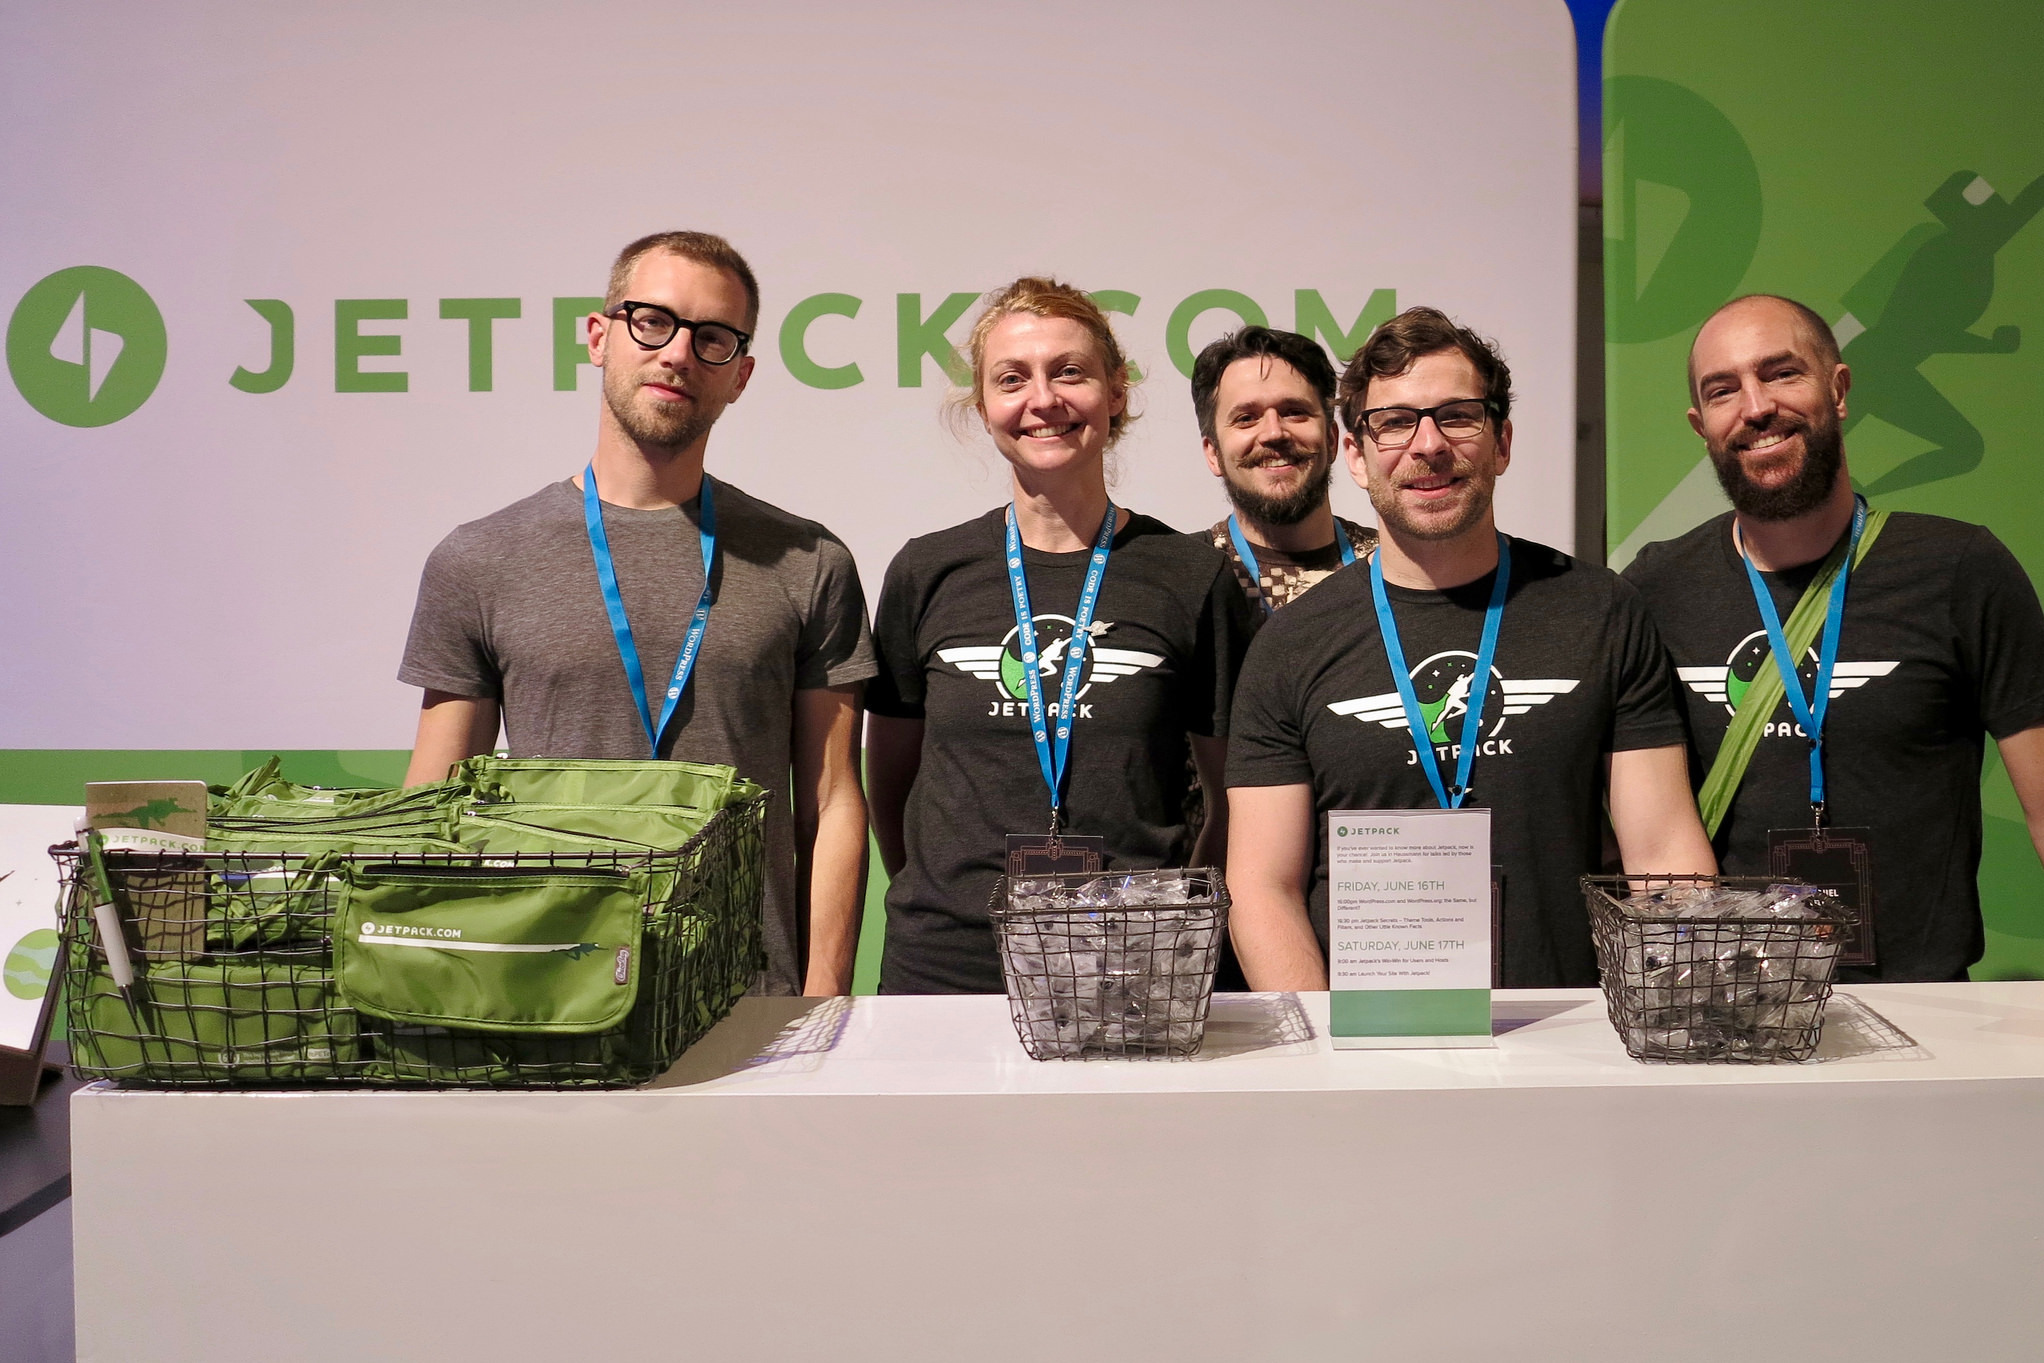 Jetpack Sponsor Table at WordCamp Europe 2017. Photo by Oliver Gobet (https://www.flickr.com/photos/gd6d/)